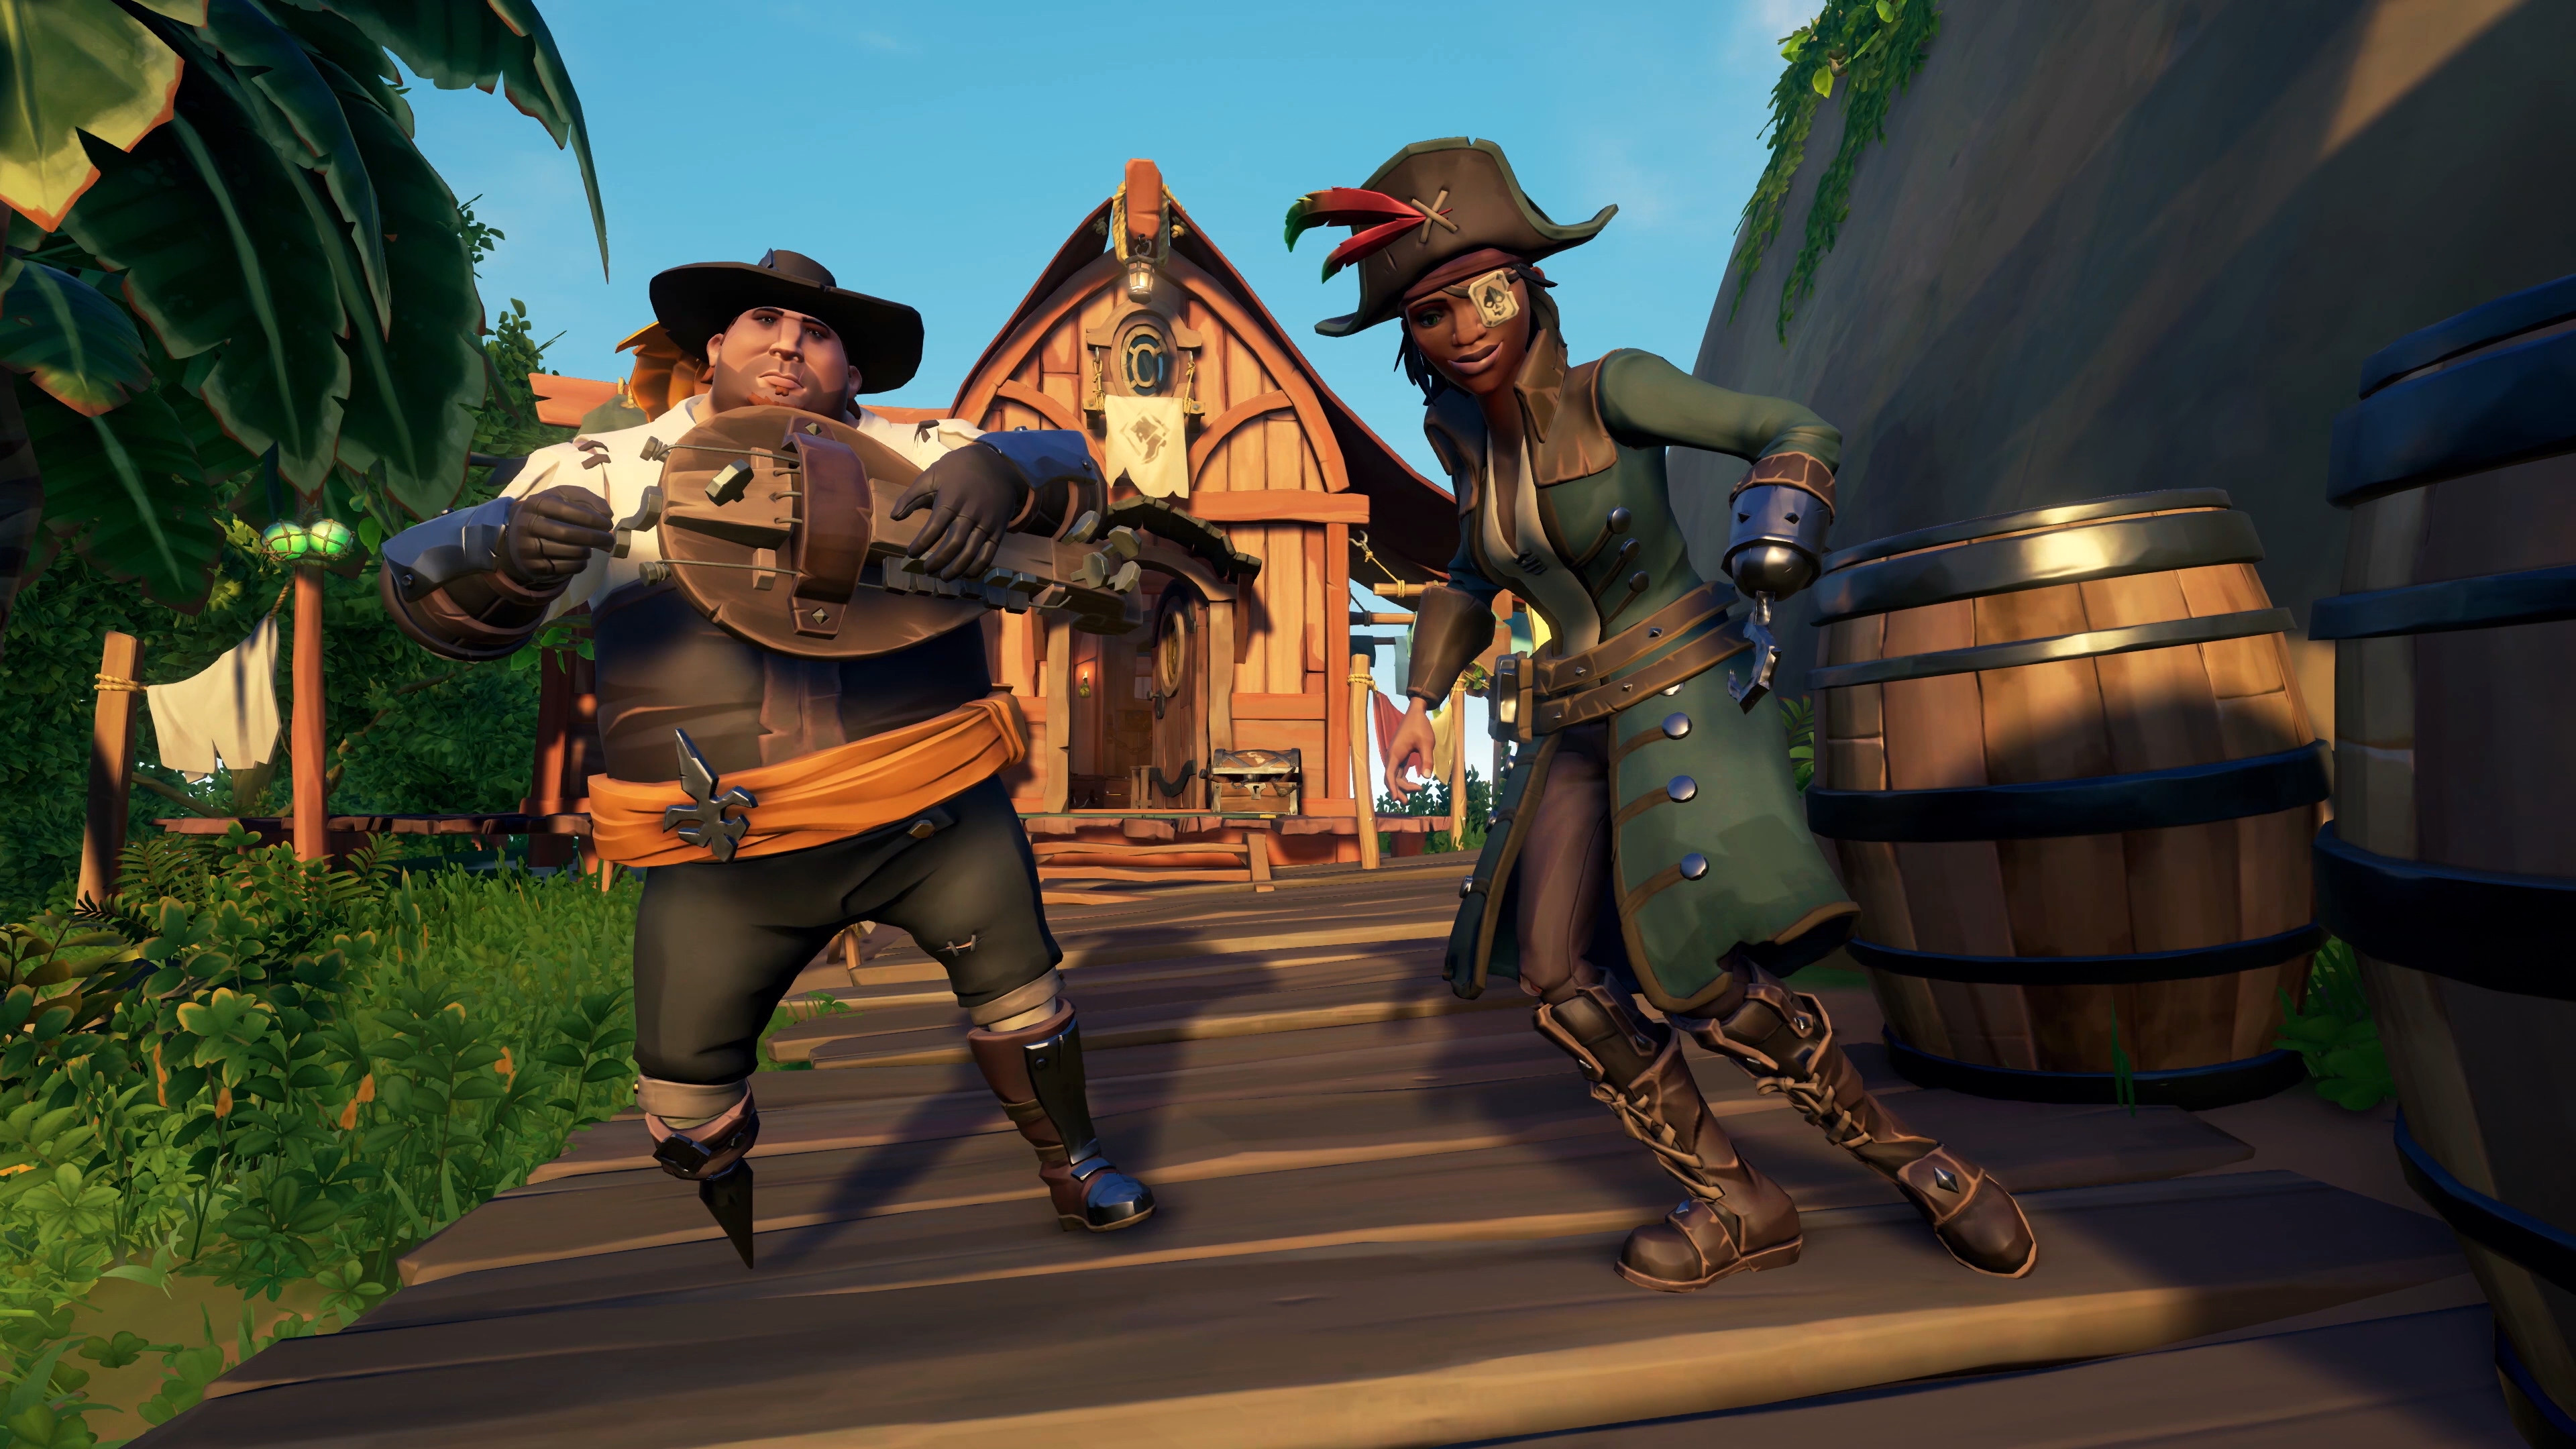 Sea of Thieves 1 0 5 update brings changes based on feedback